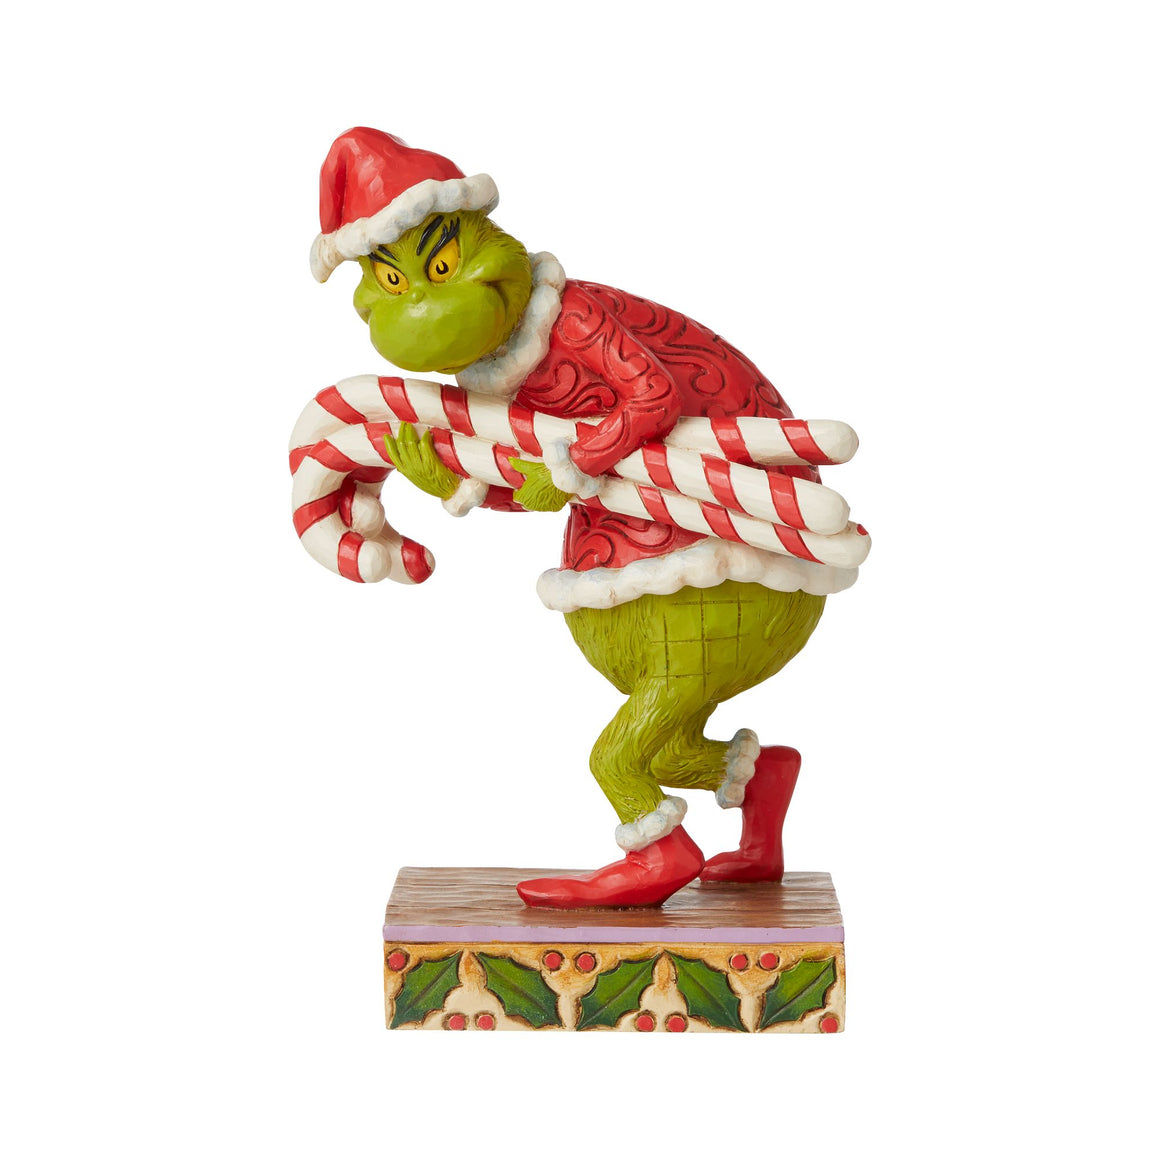 Grinch Stealing Candy Canes Figurine - The Grinch by Jim Shore